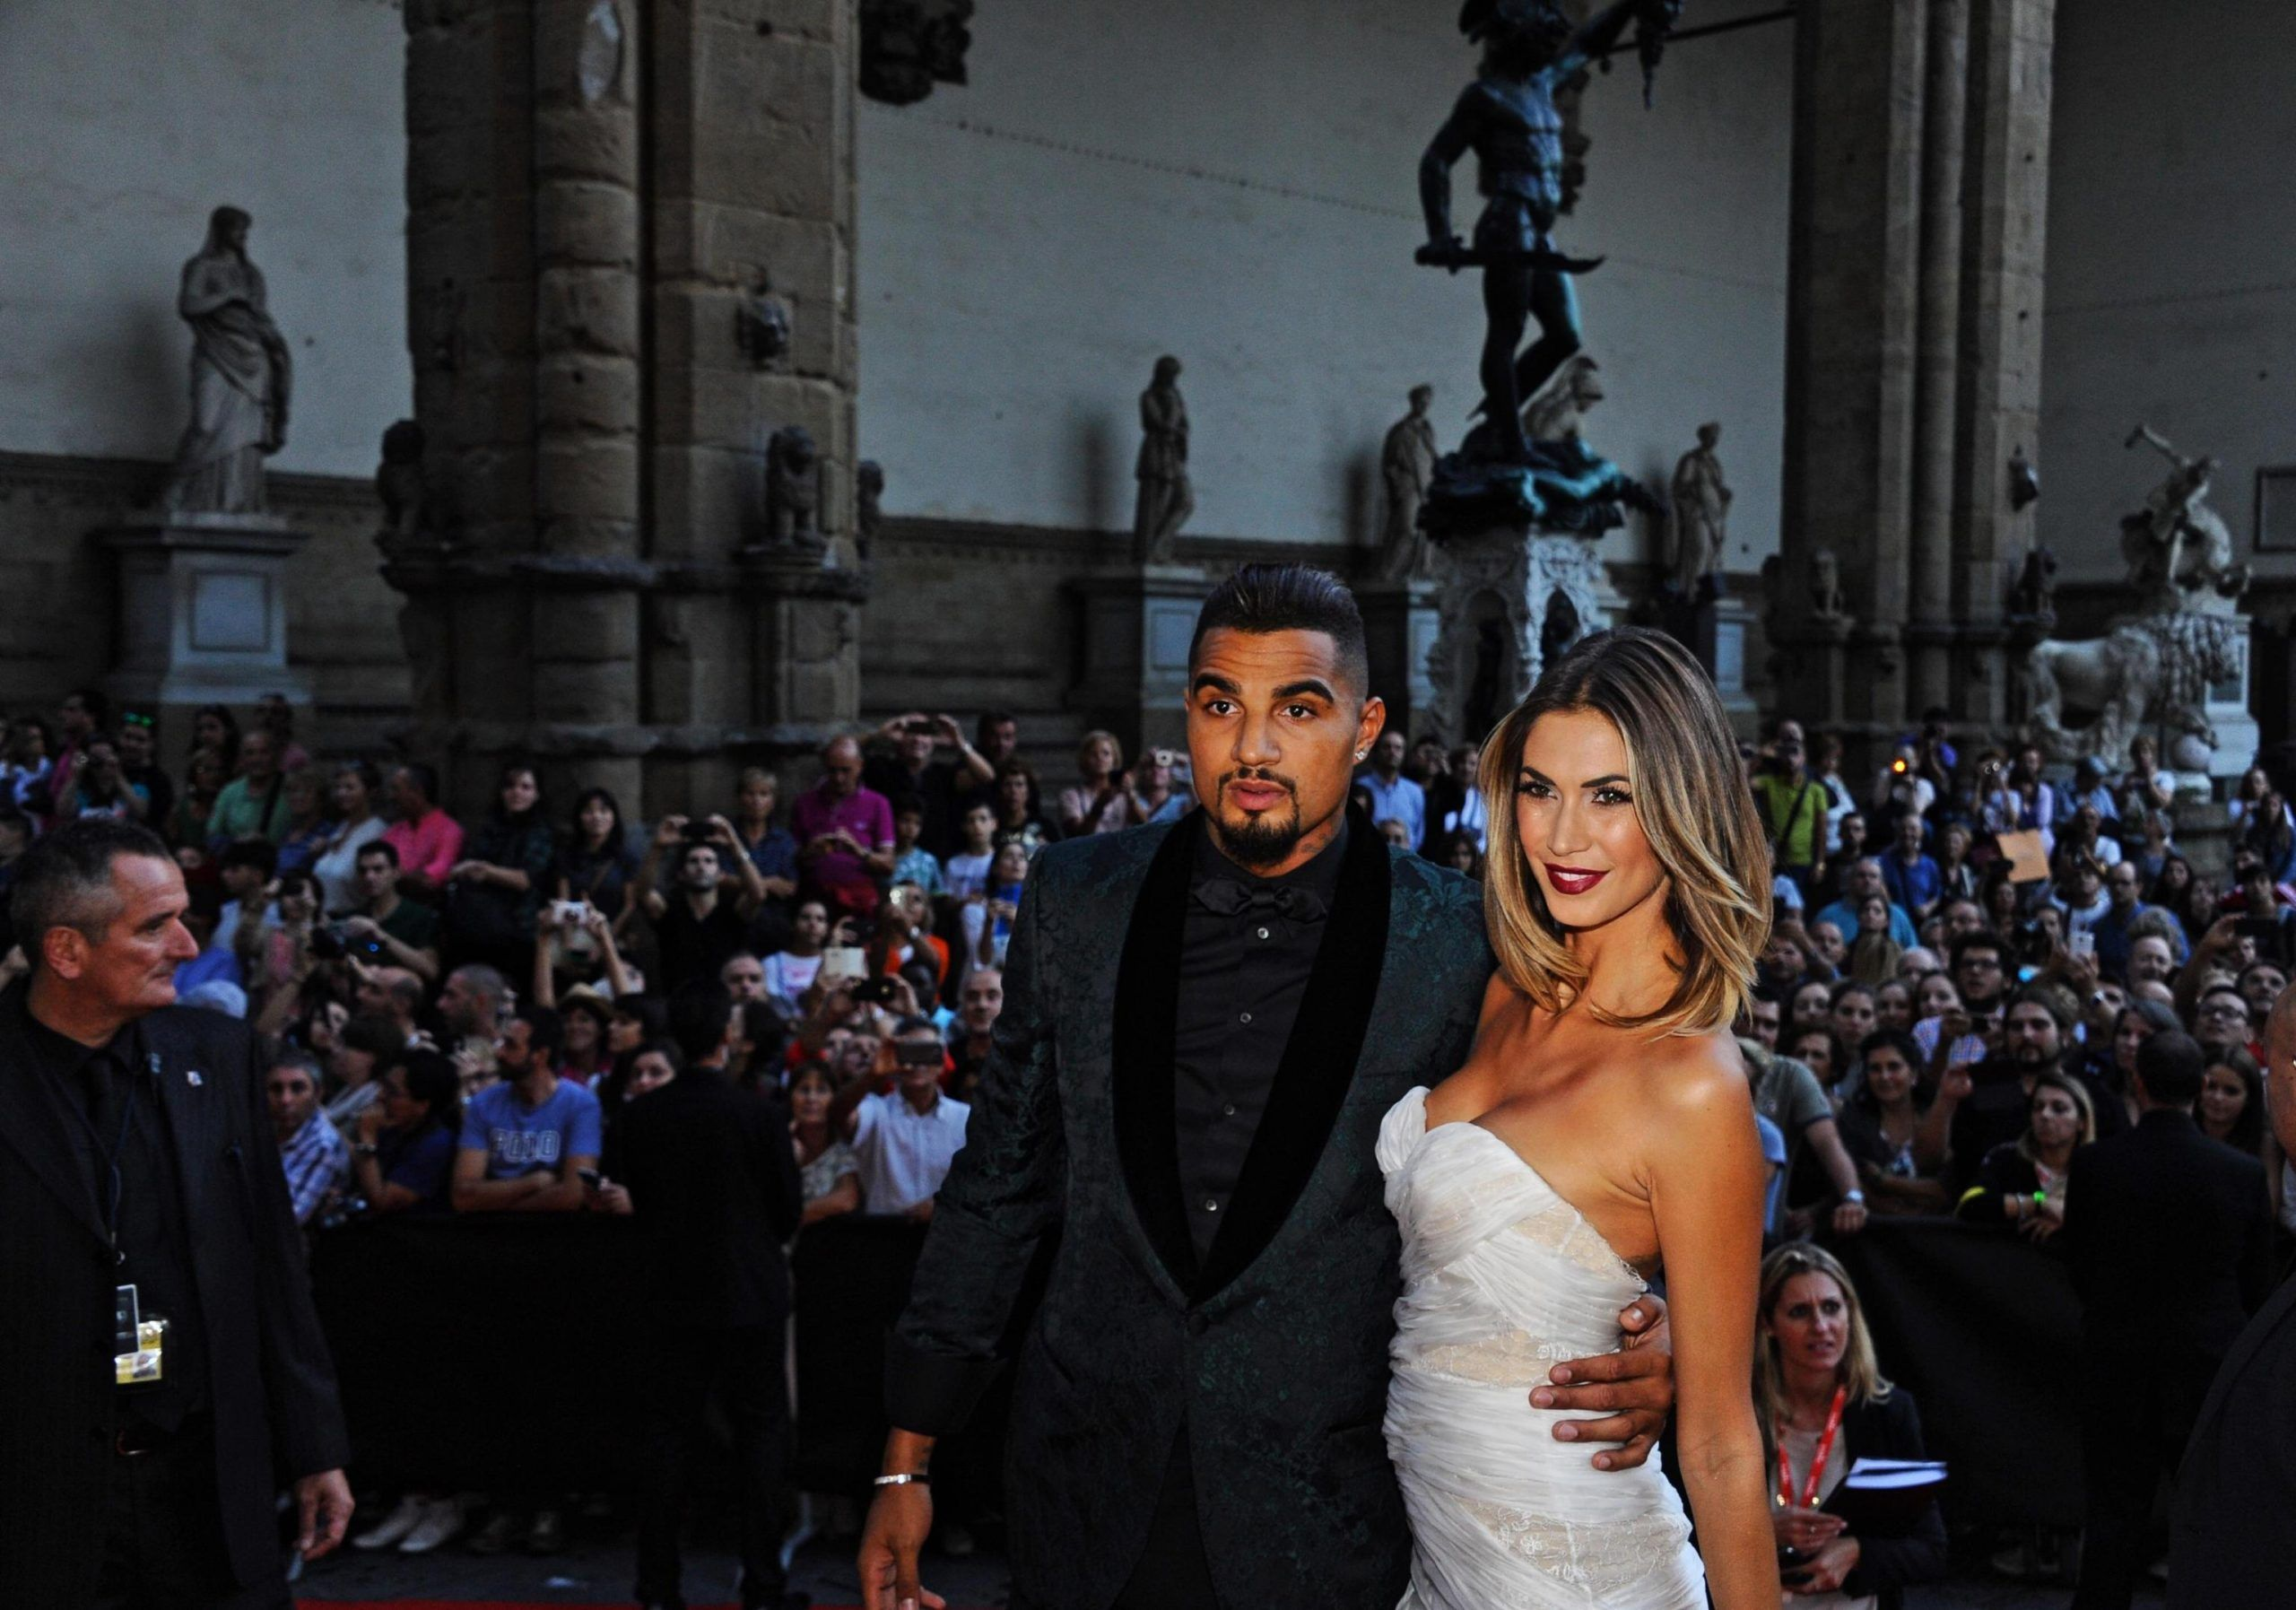 Kevin Prince Boateng si racconta come padre